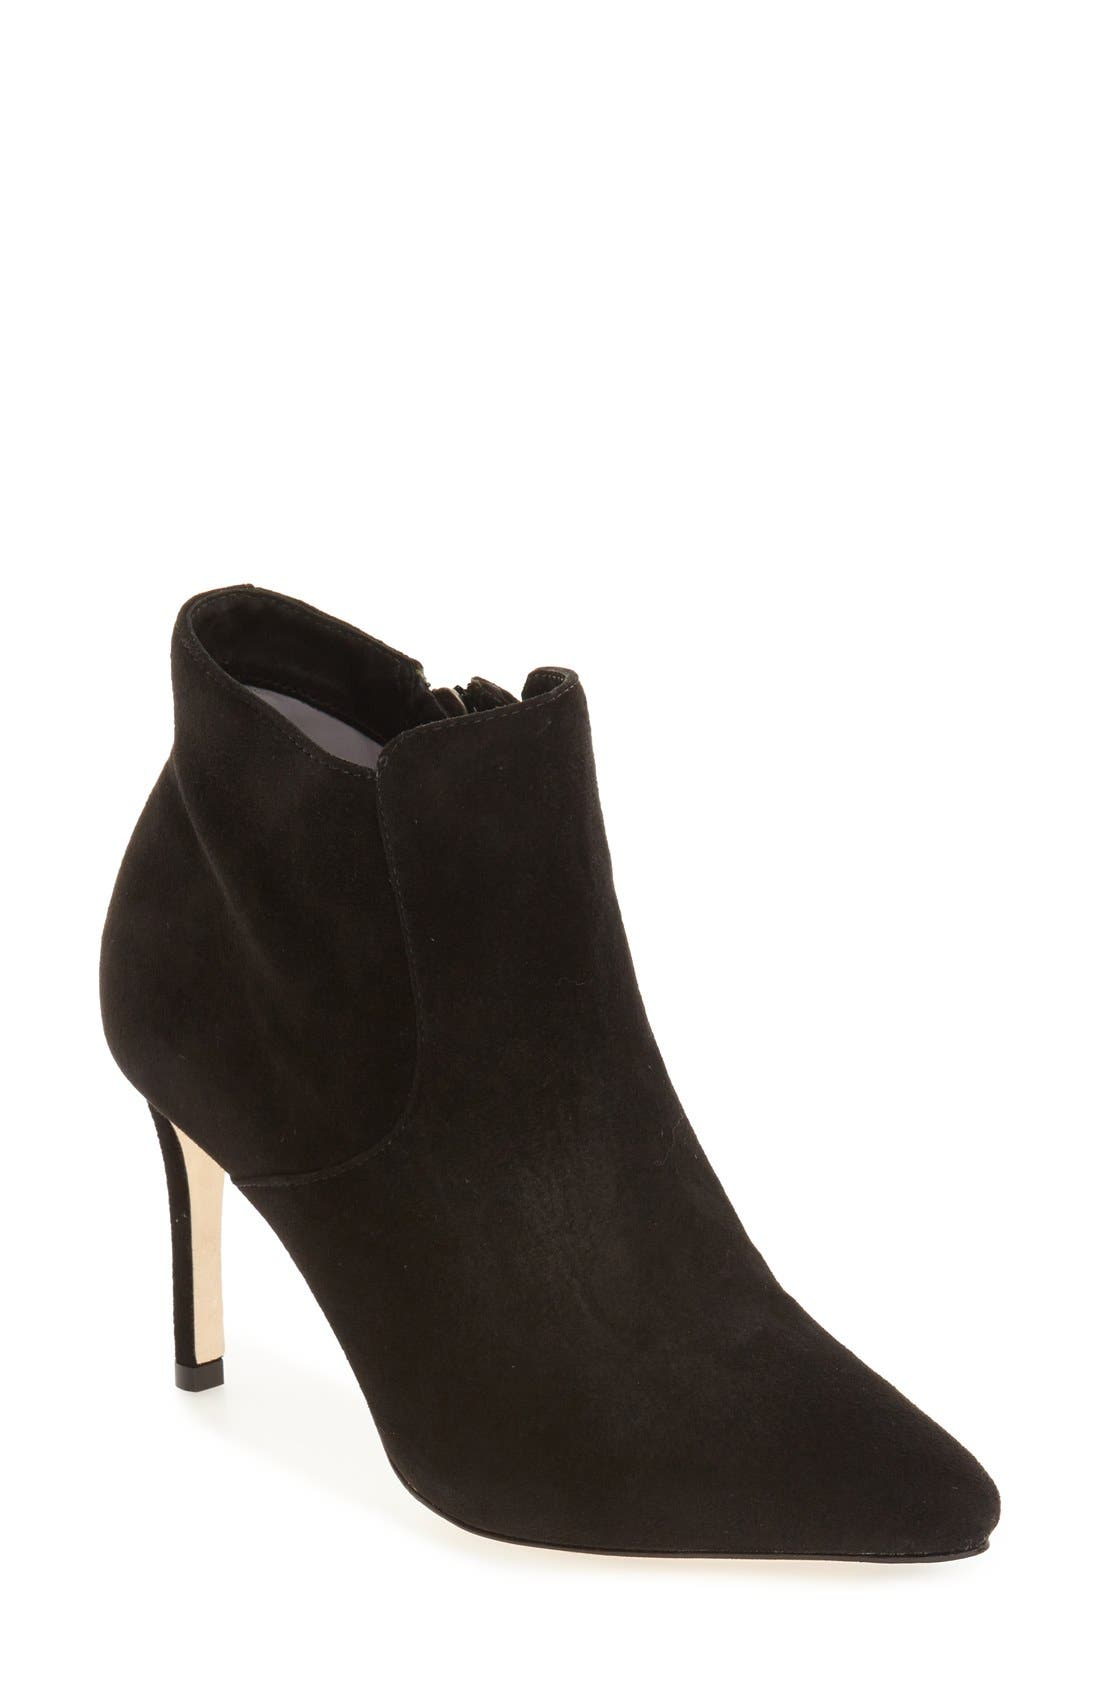 Alternate Image 1 Selected - Johnston & Murphy 'Valerie' Pointy Toe Bootie (Women)